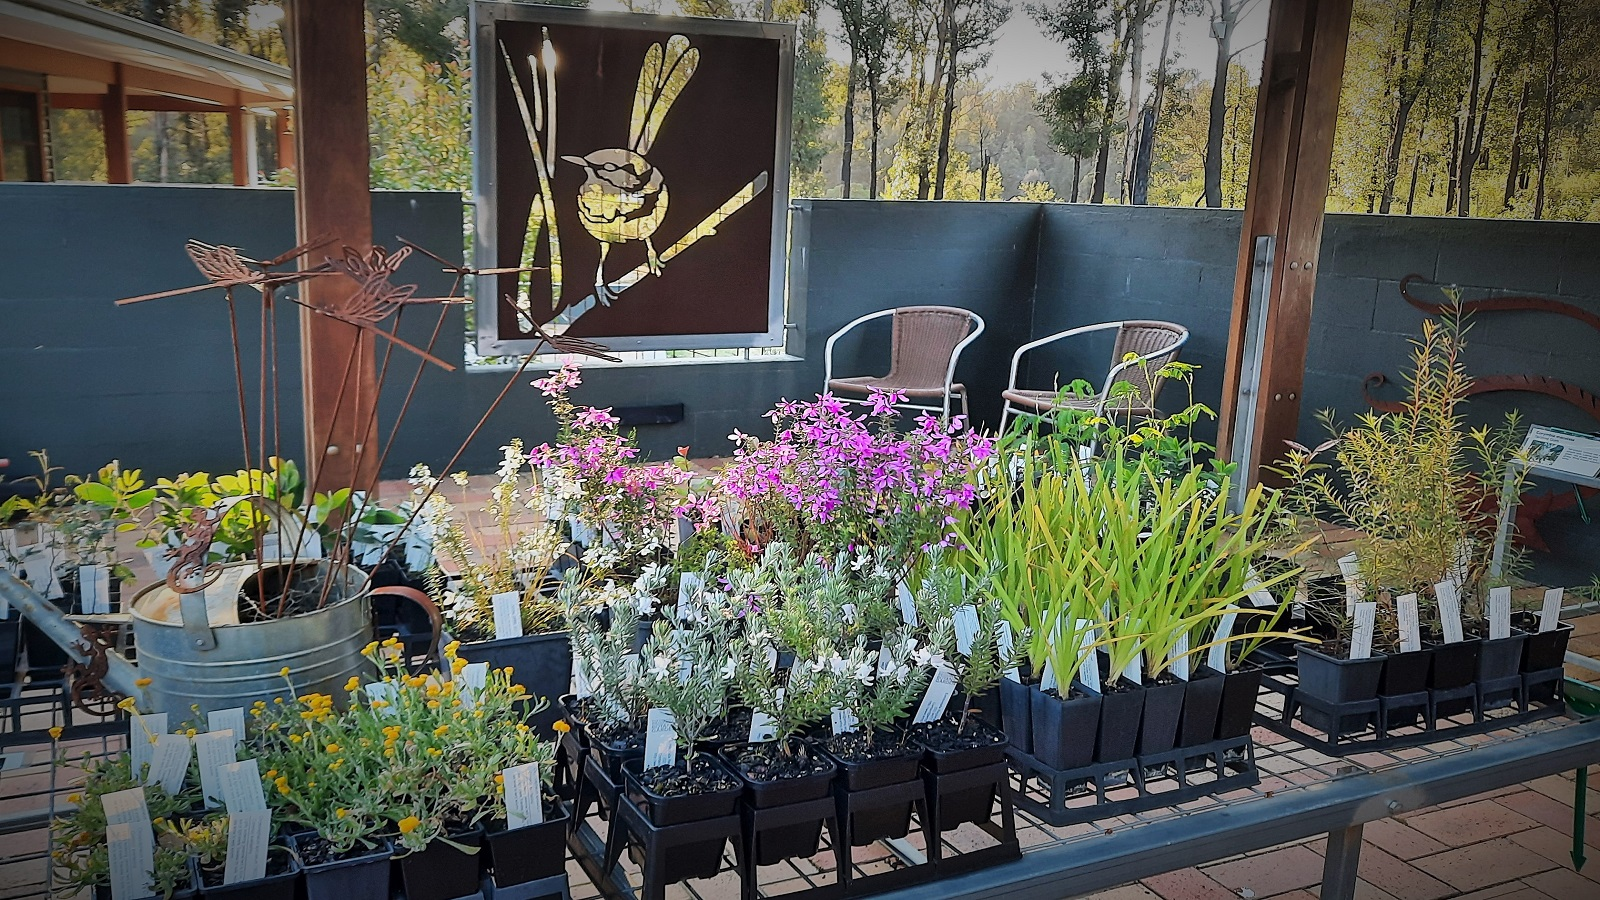 Plants available for purchase from the Botanic Garden shop